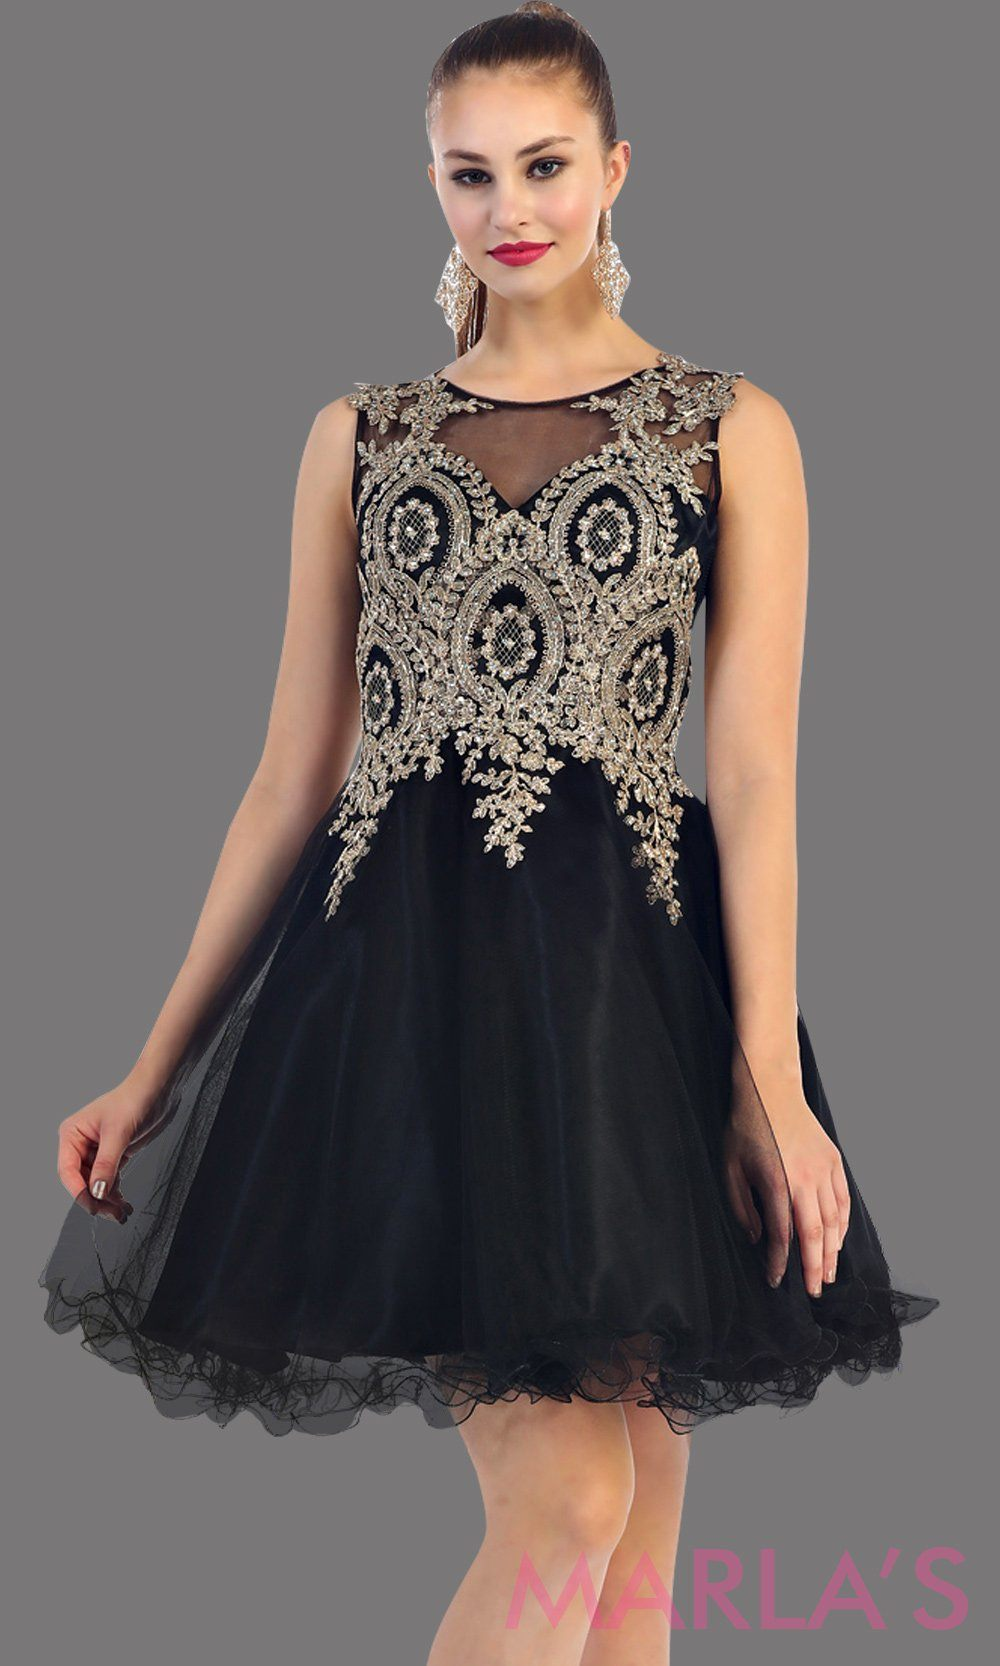 Black Short Puffy Dress with Gold Lace Applique